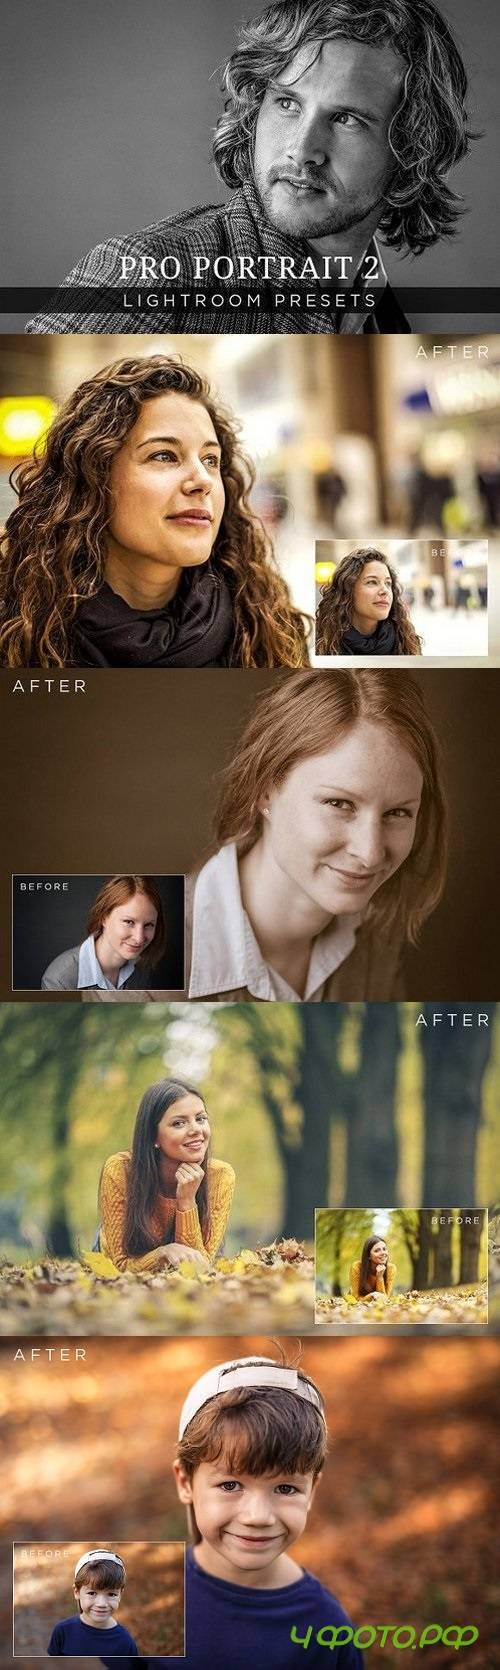 Pro Portrait Lightroom Presets Vol 2 200120